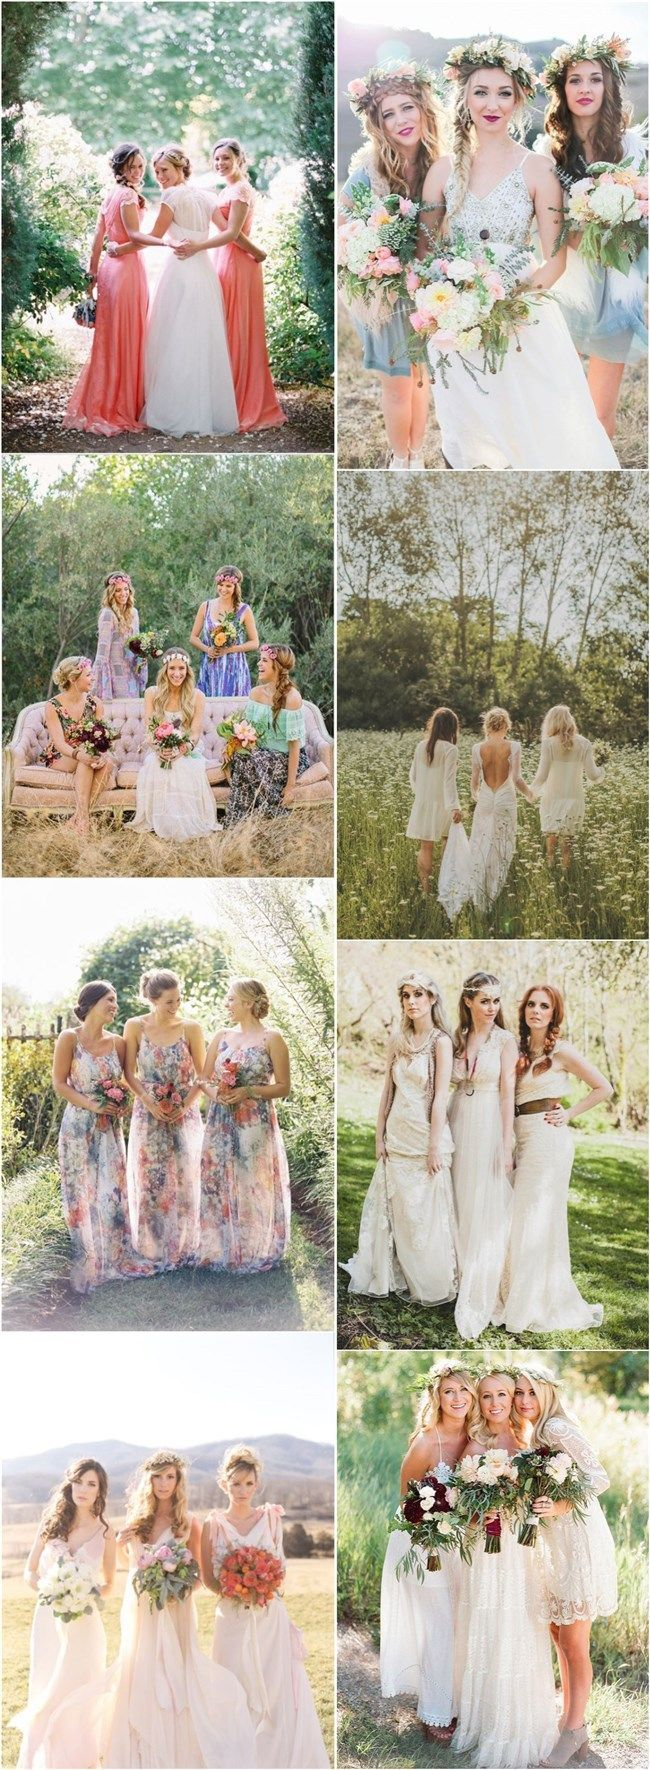 373 best images about garden and rustic on pinterest romantic 50 chic bohemian bridesmaid dresses ideas ombrellifo Images